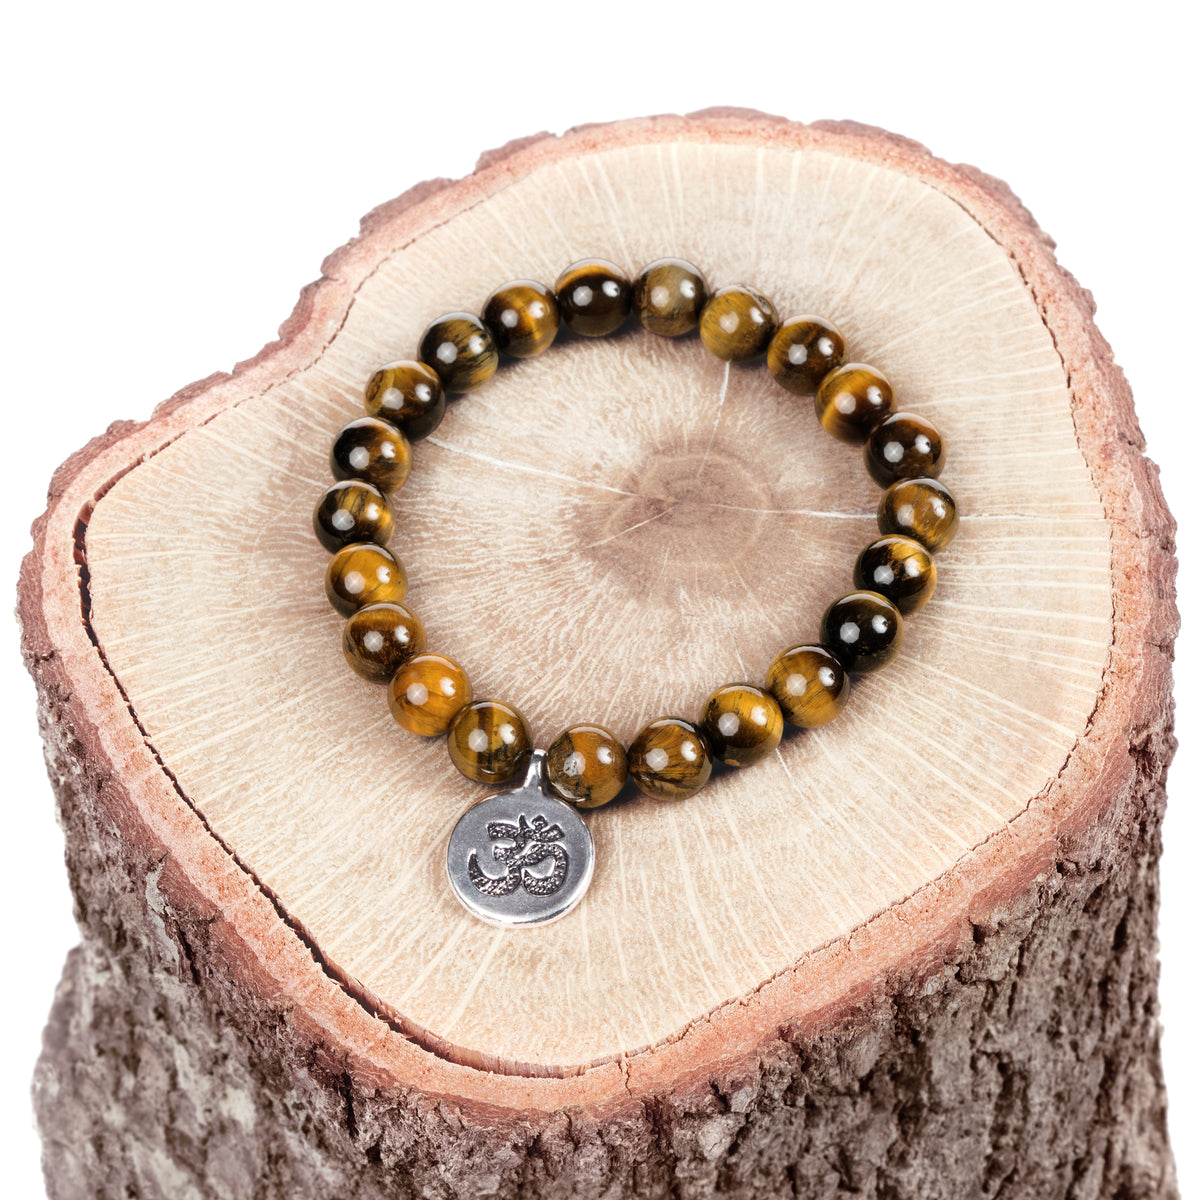 Intuition Enhancer Tiger's Eye Bracelet + Necklace Set